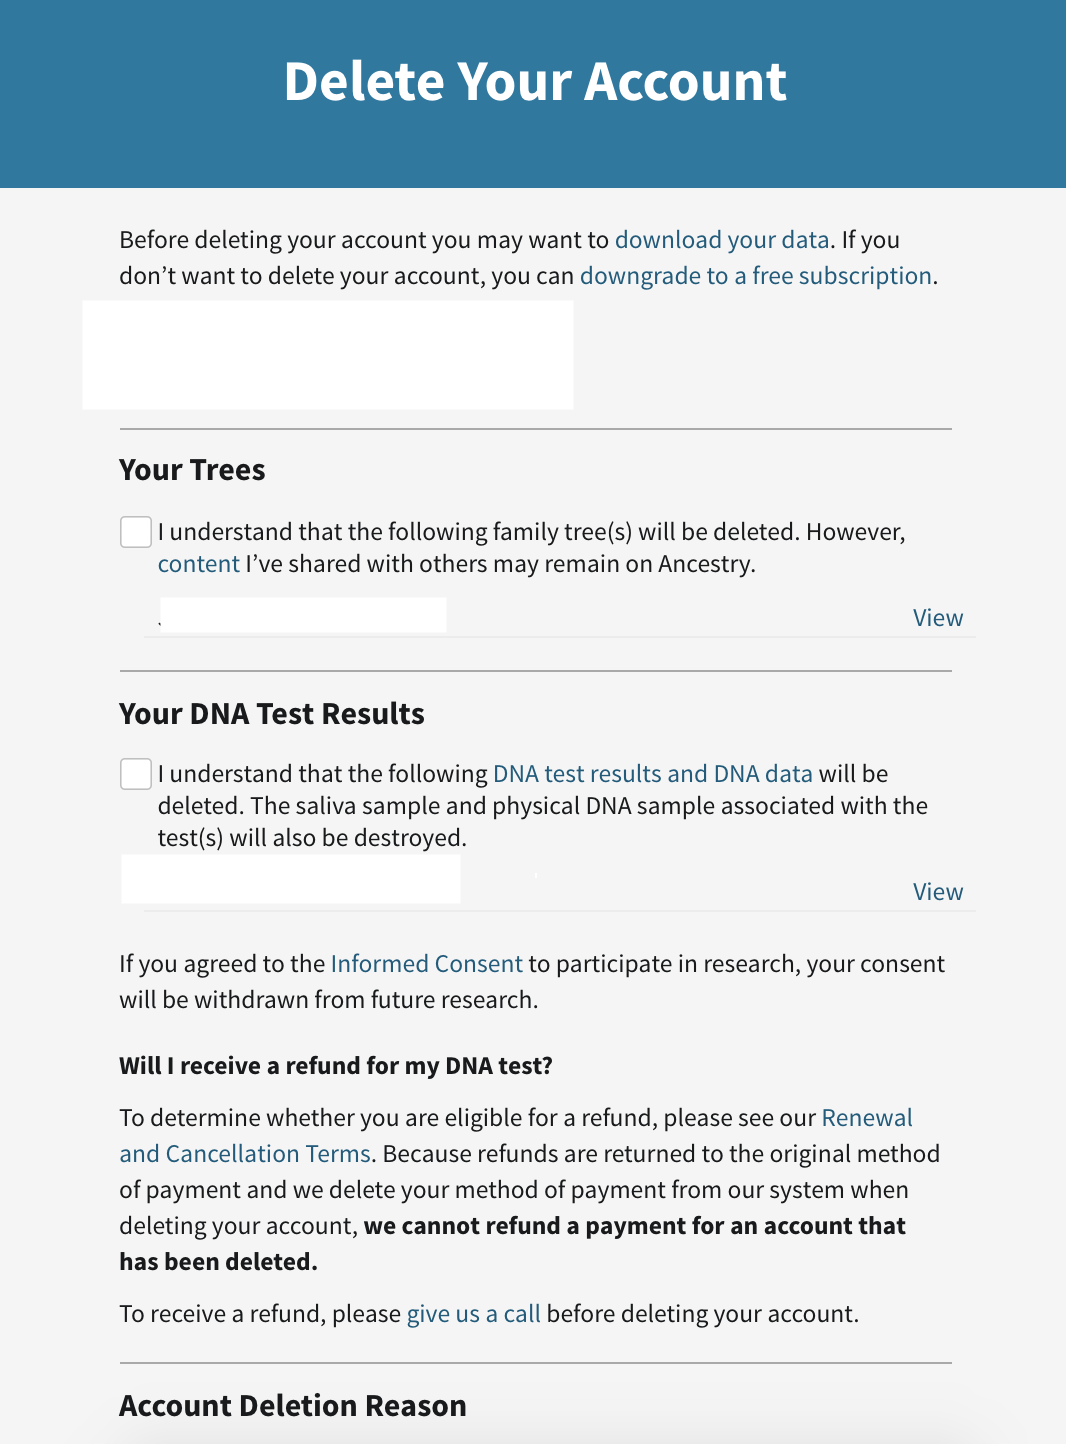 Confirmation text that Ancestry.com shows you before deleting your DNA data.